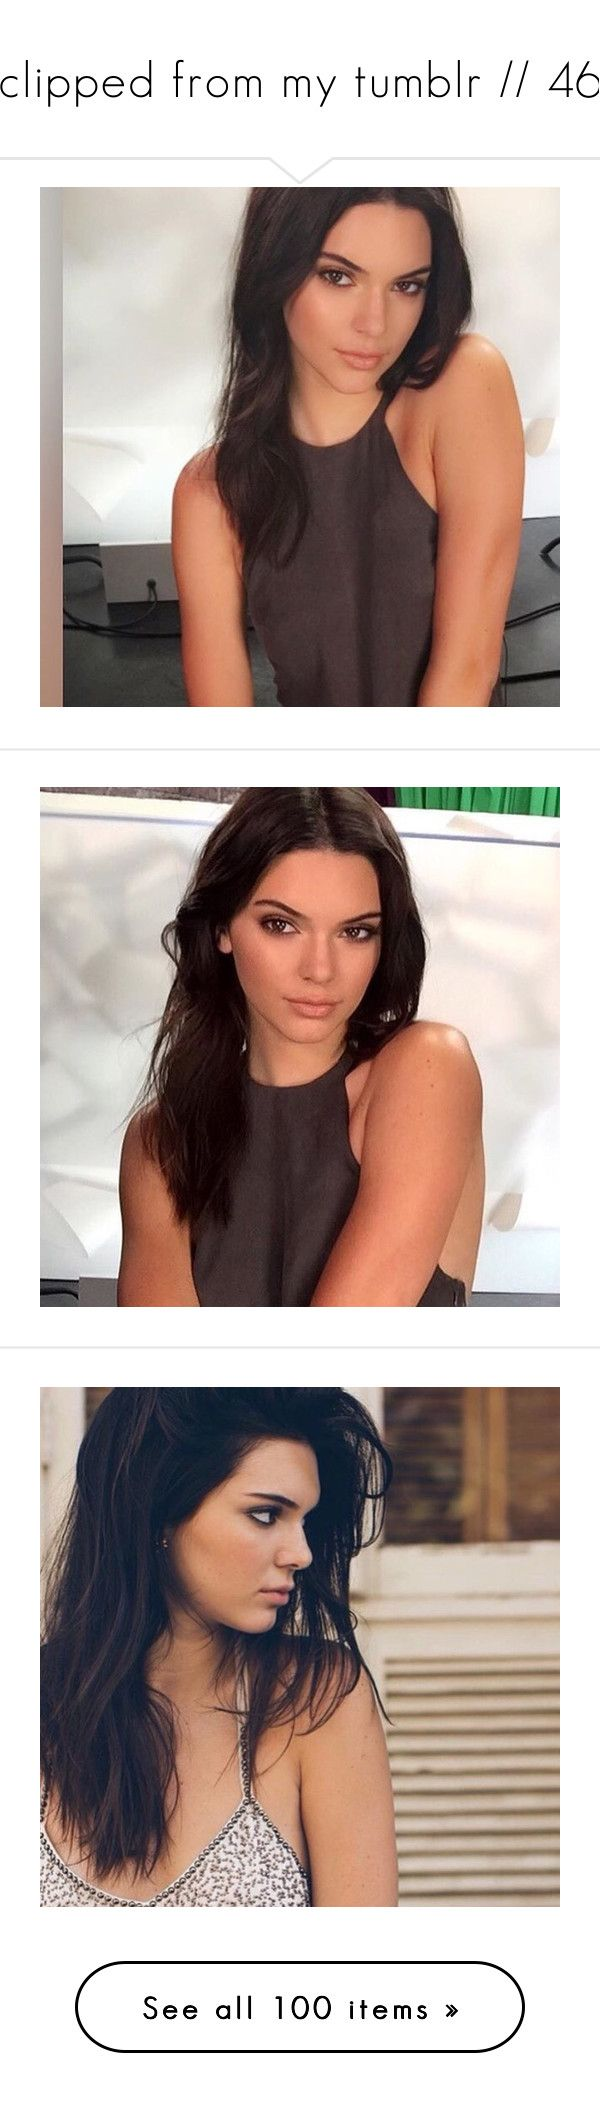 """""""clipped from my tumblr // 46"""" by cupcakes-are-cool ❤ liked on Polyvore featuring kendall jenner, girls, kendall, harry styles, couples, backgrounds, people, them, pictures and black and white"""